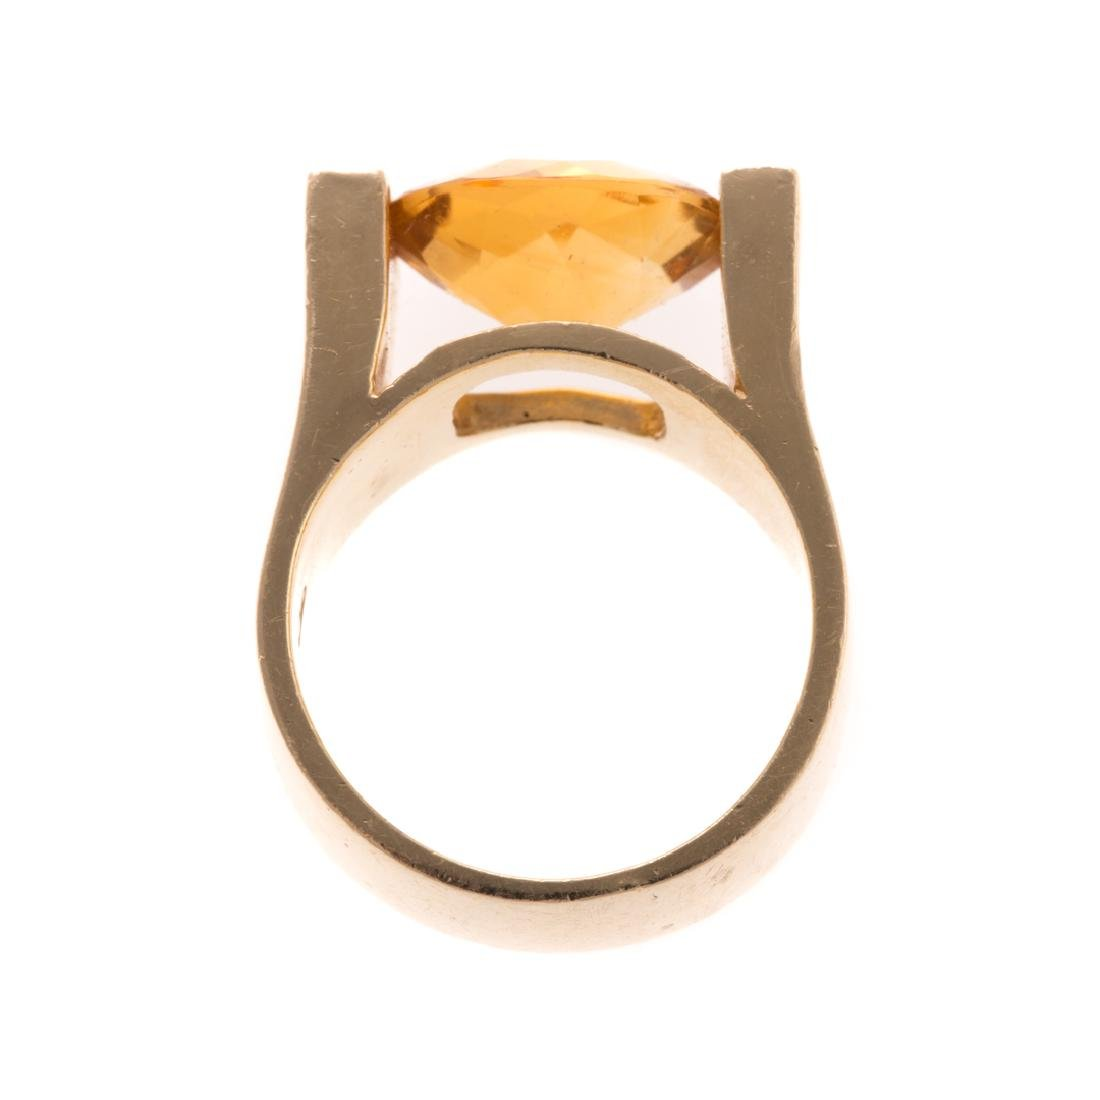 A Lady's Citrine Ring in 14K Gold - 3